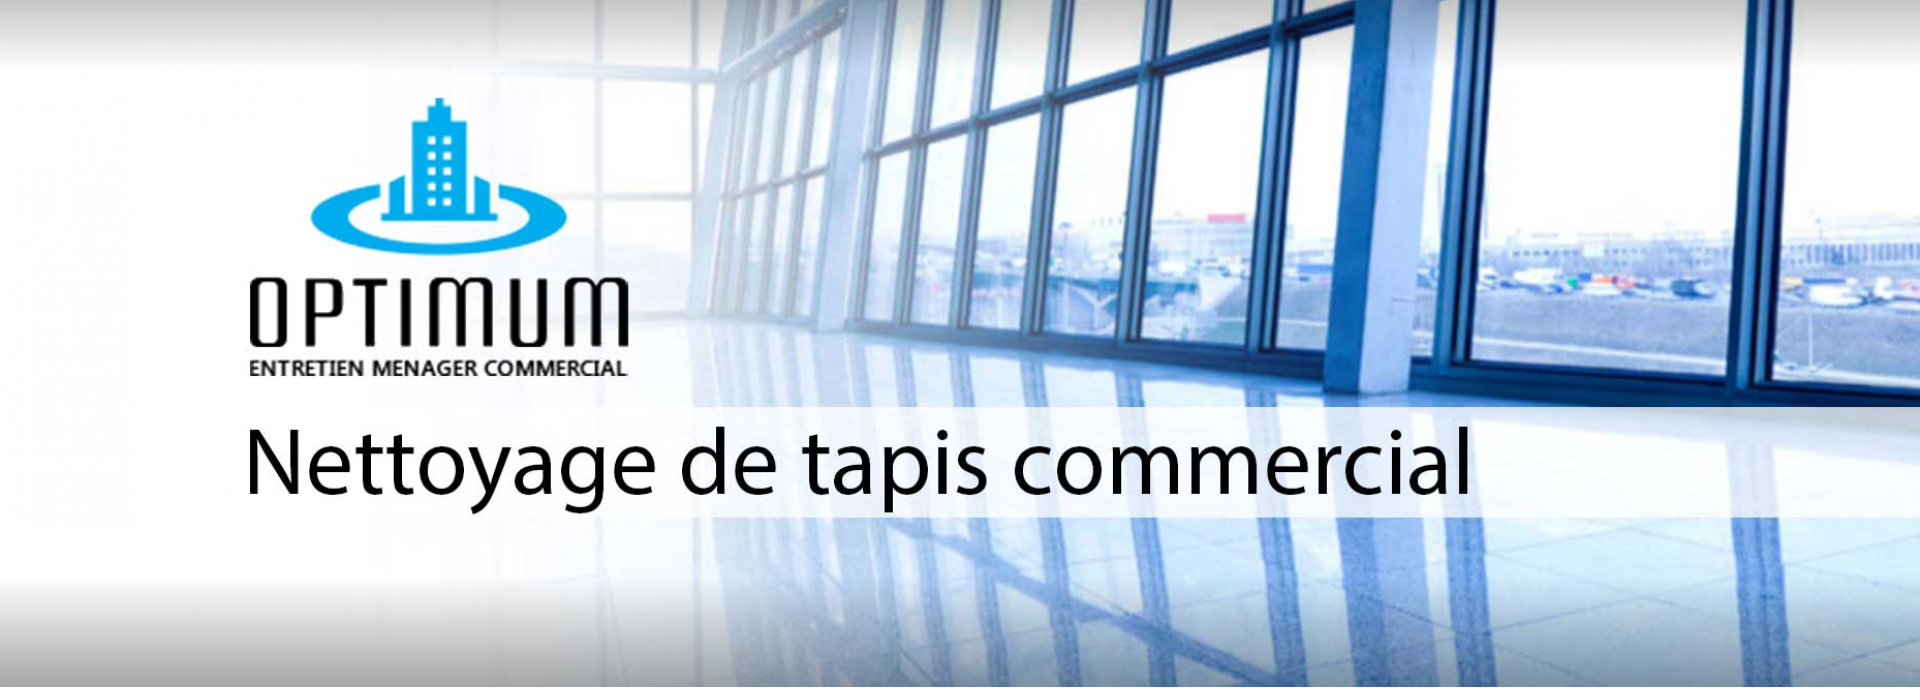 page-nettoyage-tapis.png